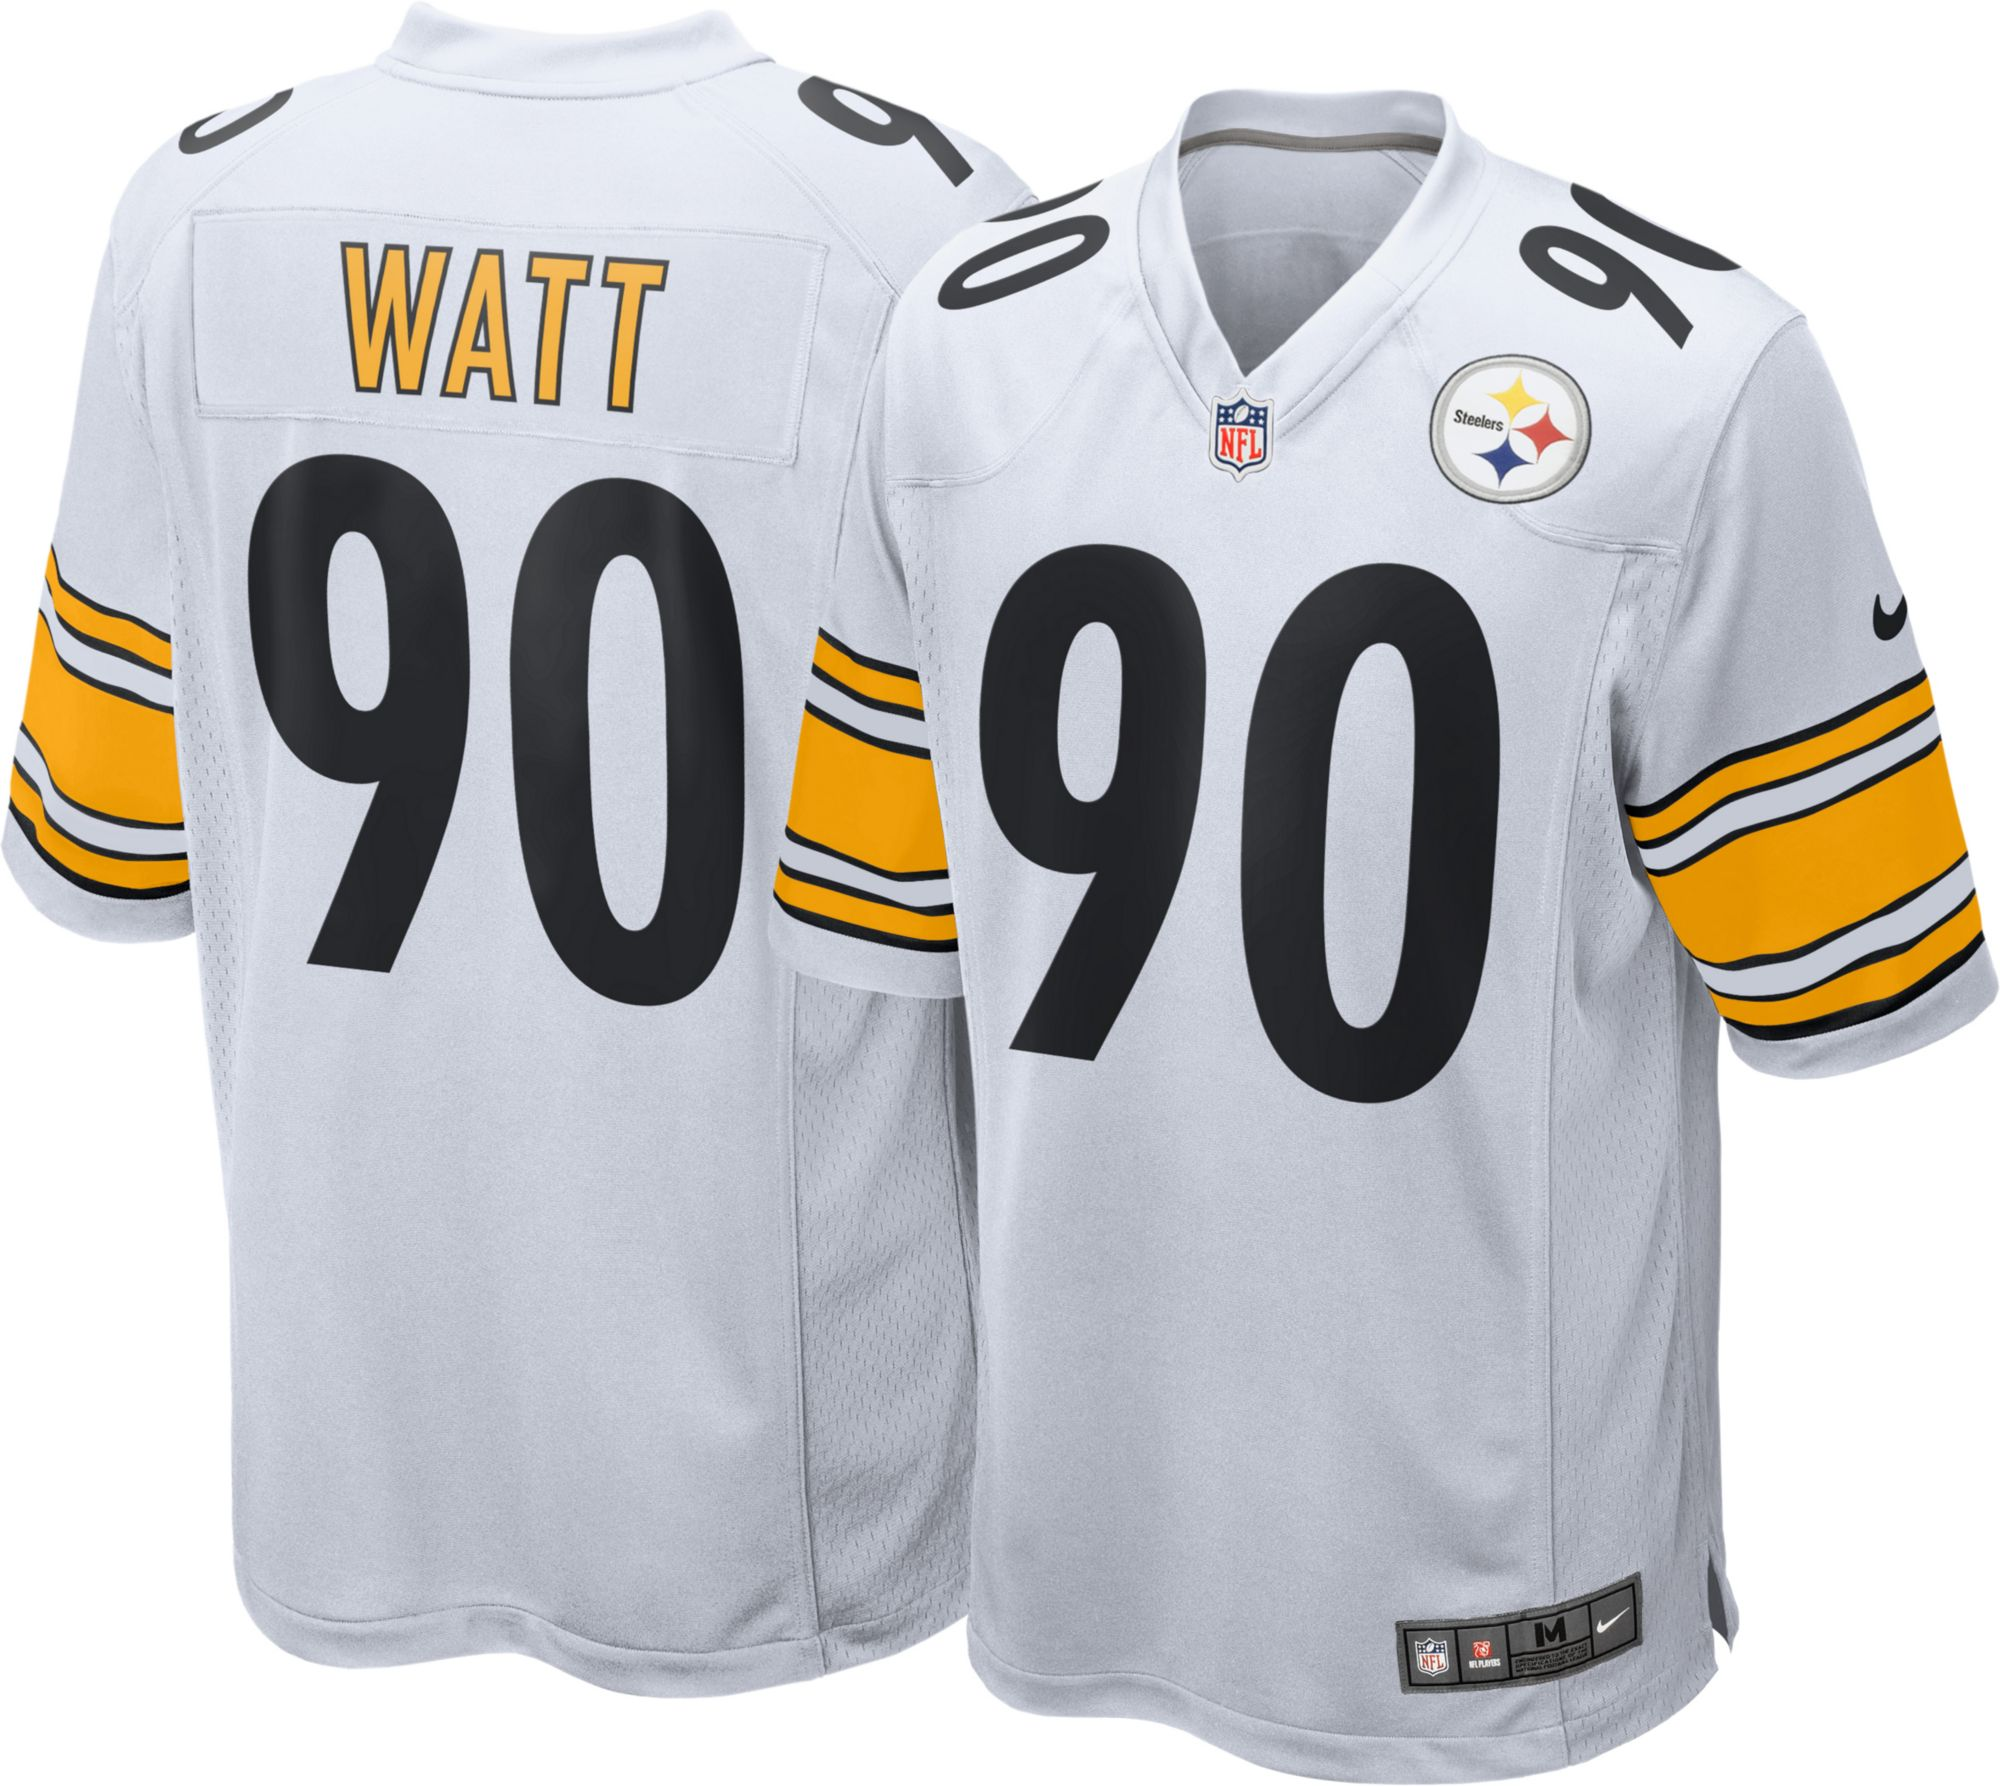 new product 8bdd5 2d814 ebay pittsburgh steelers away jersey 09862 c85a5